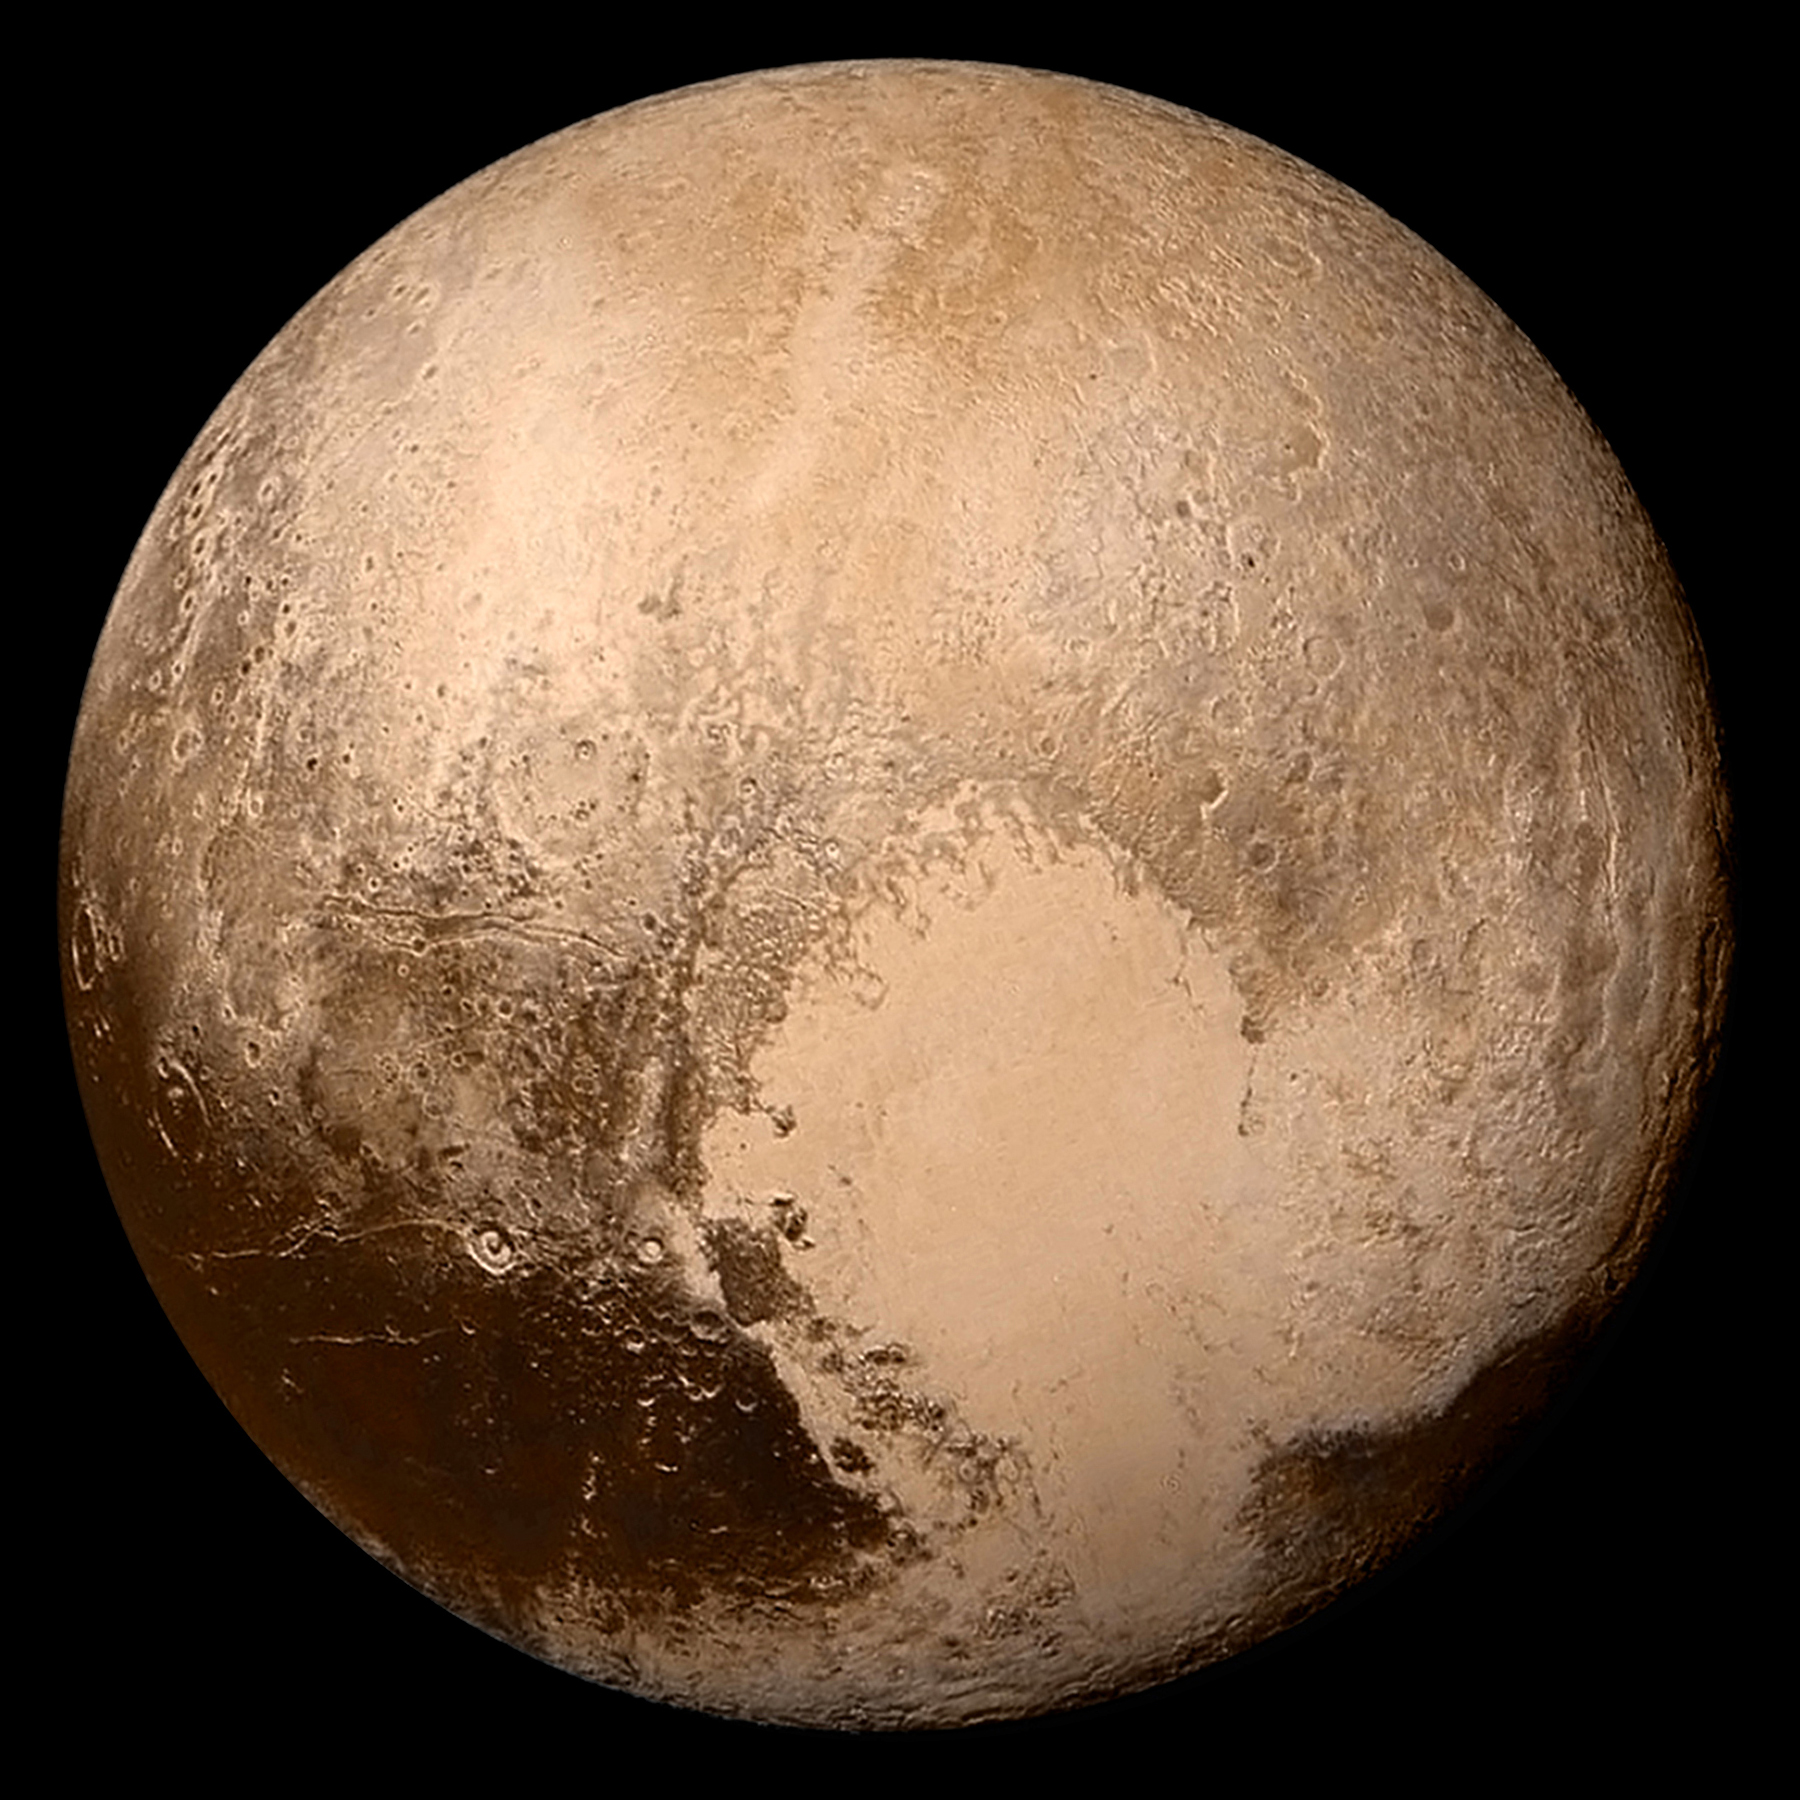 Four images from New Horizons' Long Range Reconnaissance Imager (LORRI) were combined with color data from the Ralph instrument to create this global view of Pluto. The lower right edge of Pluto in this view currently lacks high-resolution color coverage. The images, taken when the spacecraft was 280,000 miles (450,000 kilometers) away, show features as small as 1.4 miles (2.2 kilometers). The north polar region is at top, with bright Tombaugh Regio to the lower right of center and part of the dark Cthulhu Regio at lower left. Part of the dark Krun Regio is also visible at extreme lower right. Images from NASA on July 14, 2015, released July 25, 2015.